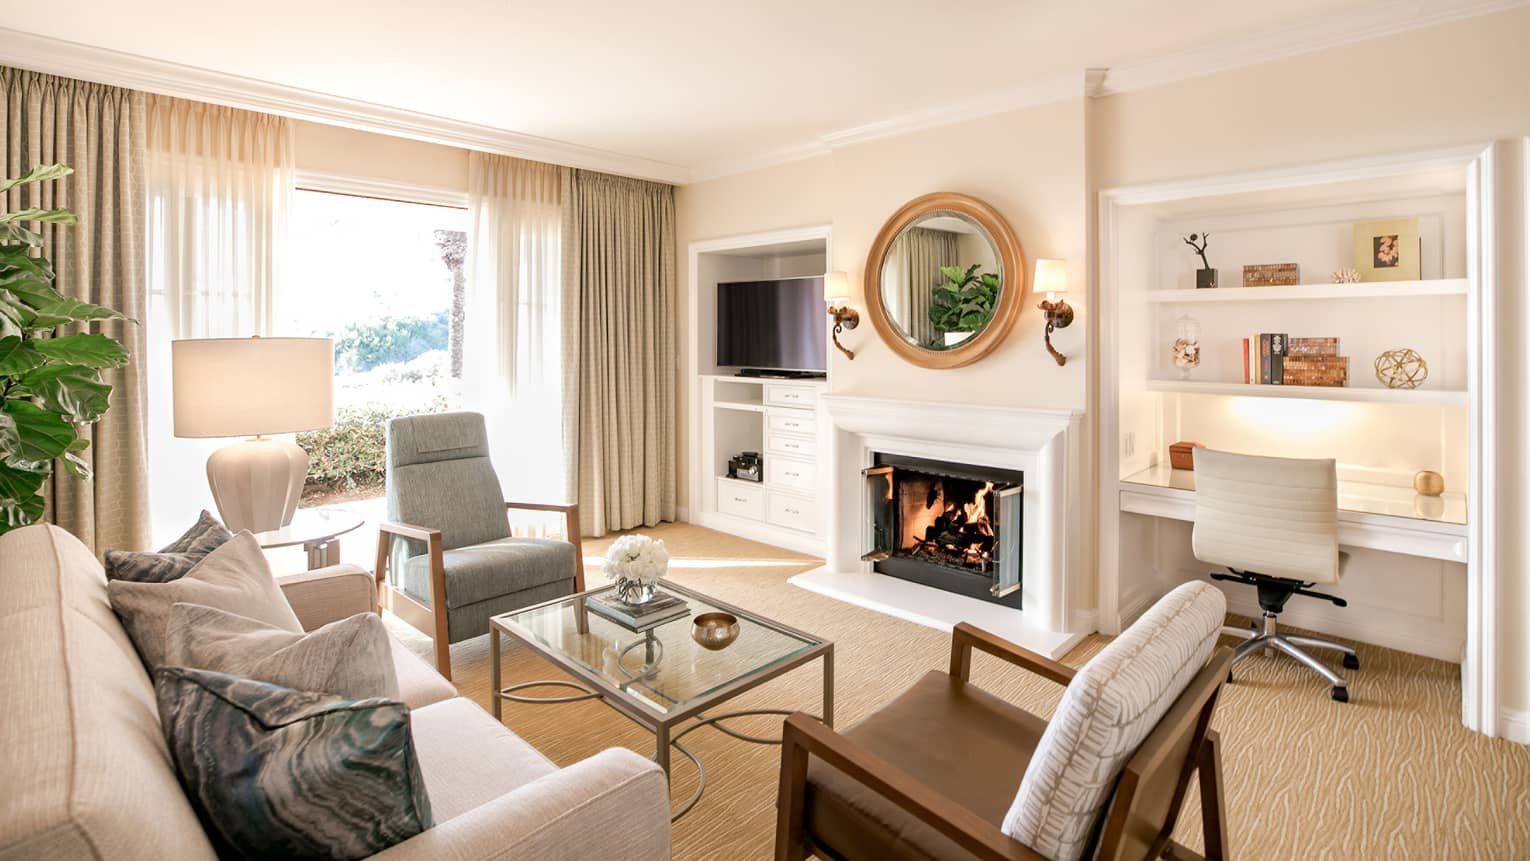 Sunny, modern villa seating room with white fireplace under round mirror, by built-in desk